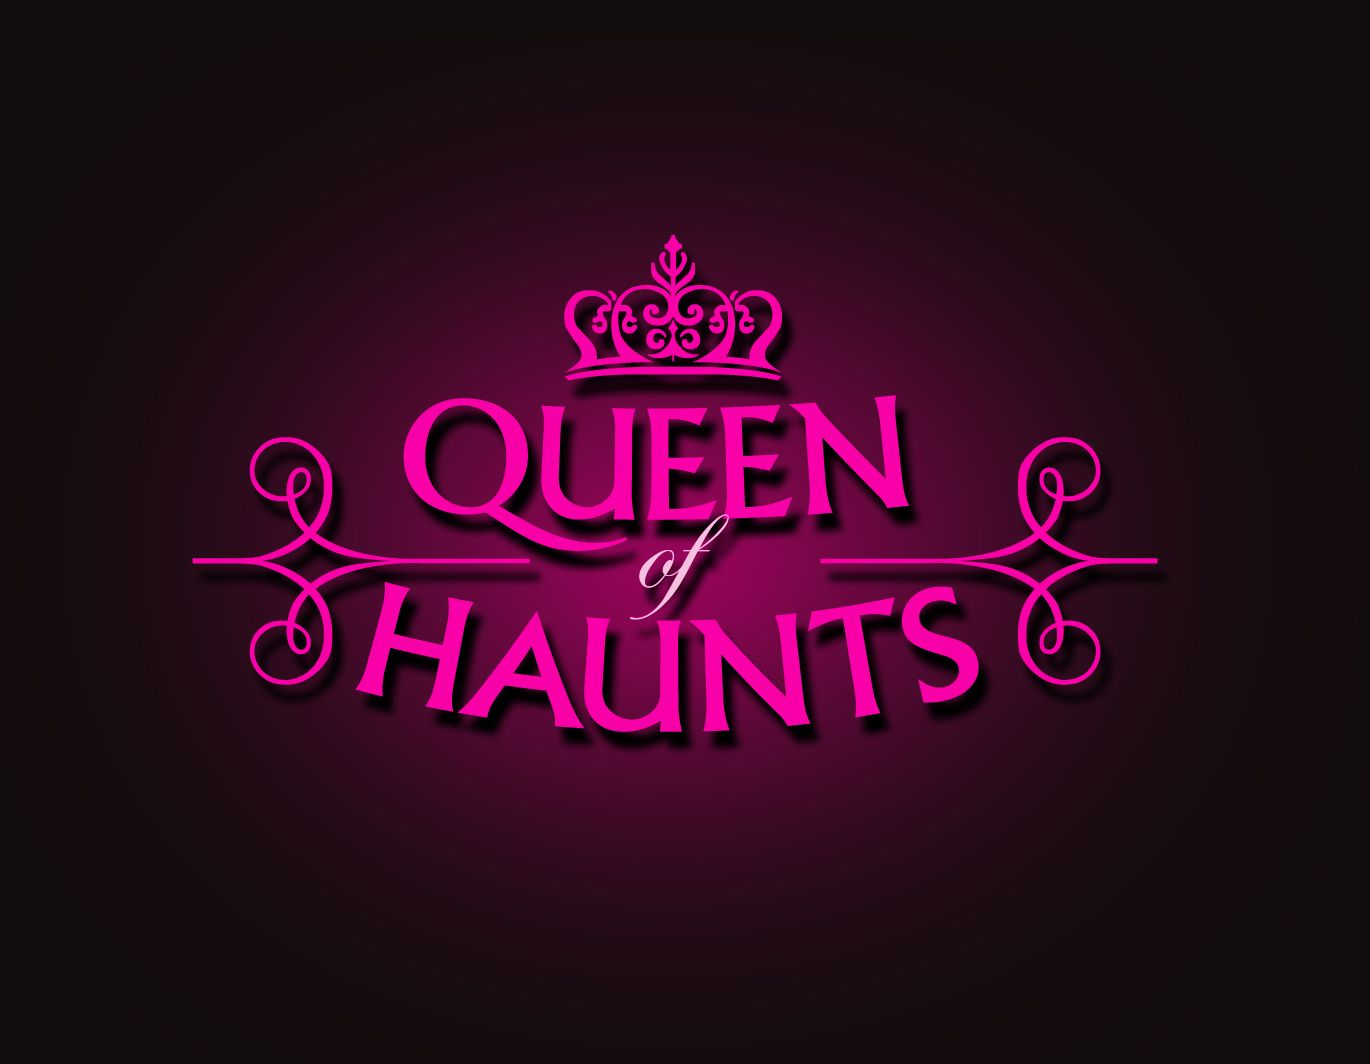 Queen of Haunts